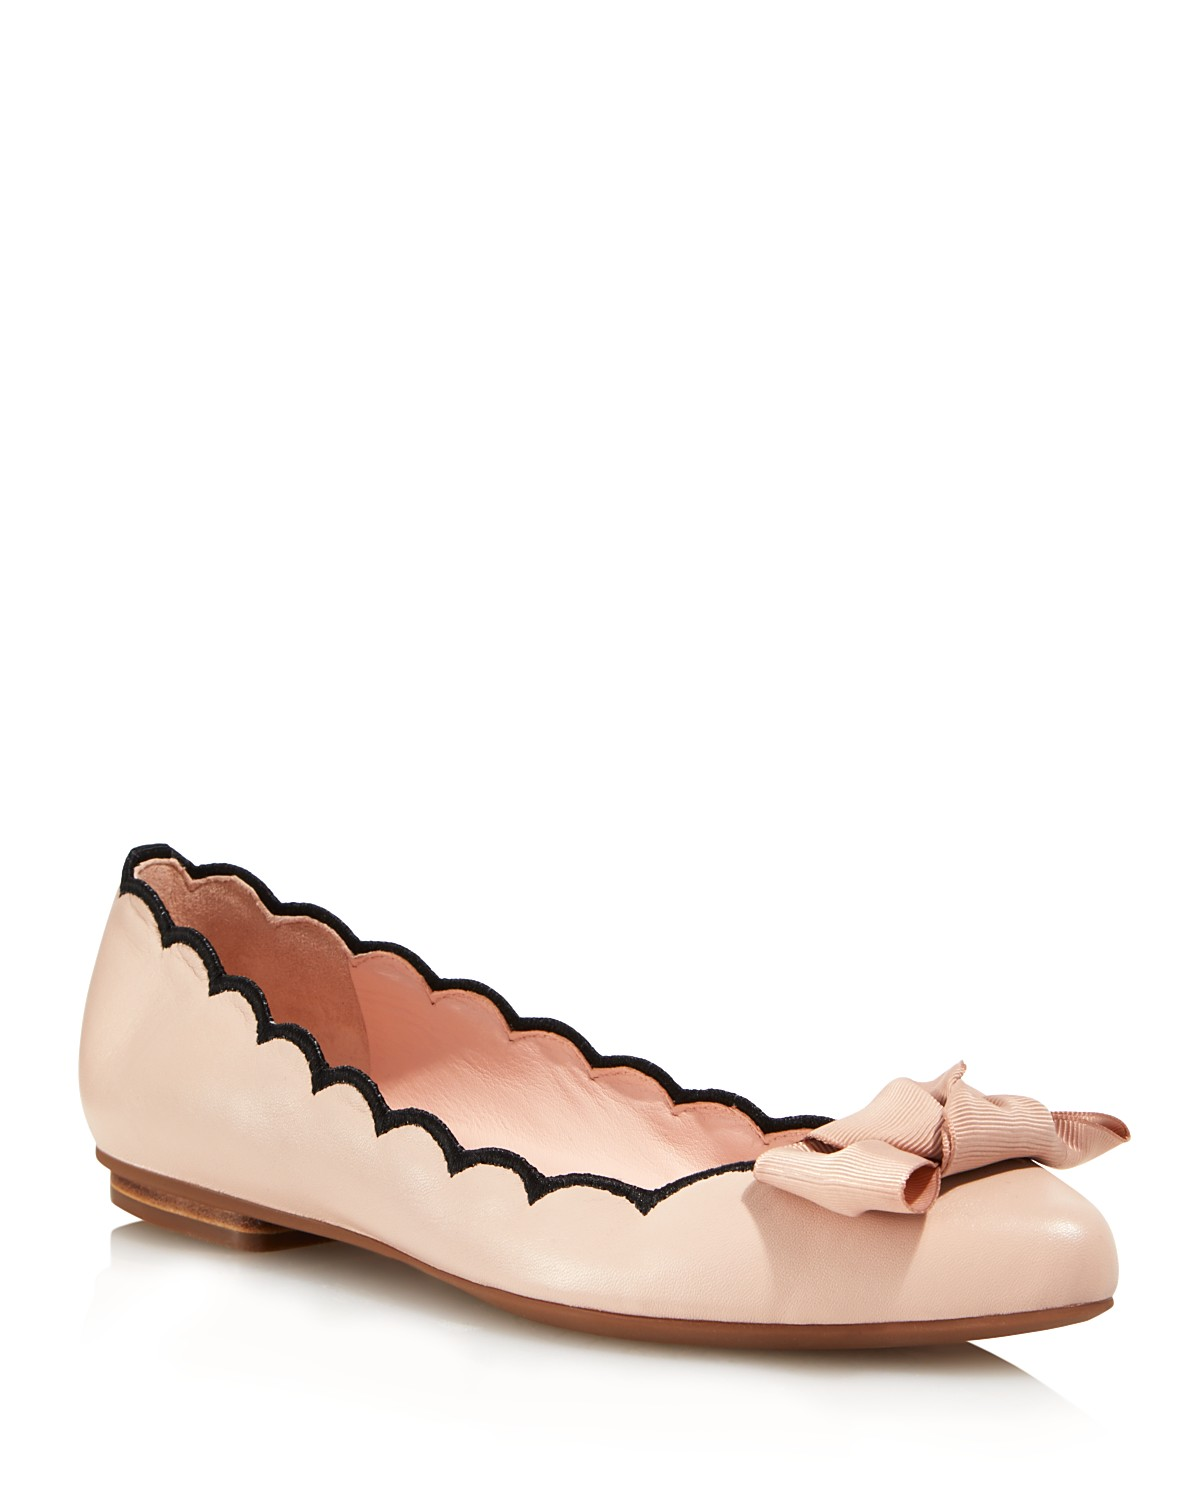 Kate Spade New York Women's Nannete Scalloped Leather Pointed Toe Flats JNXgm